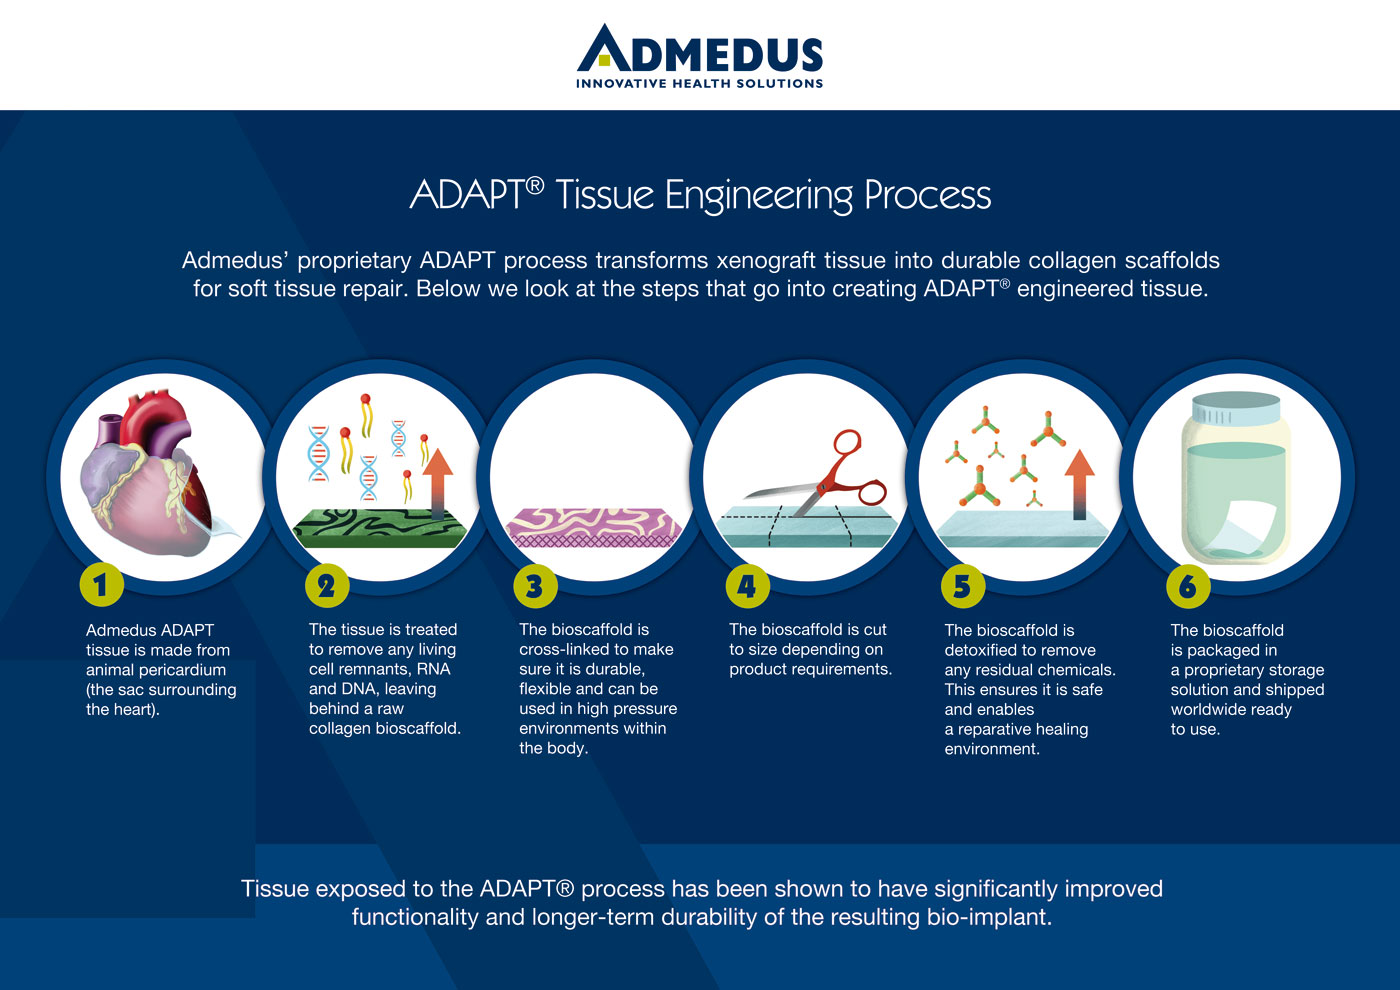 ADAPT Tissue Eng Process